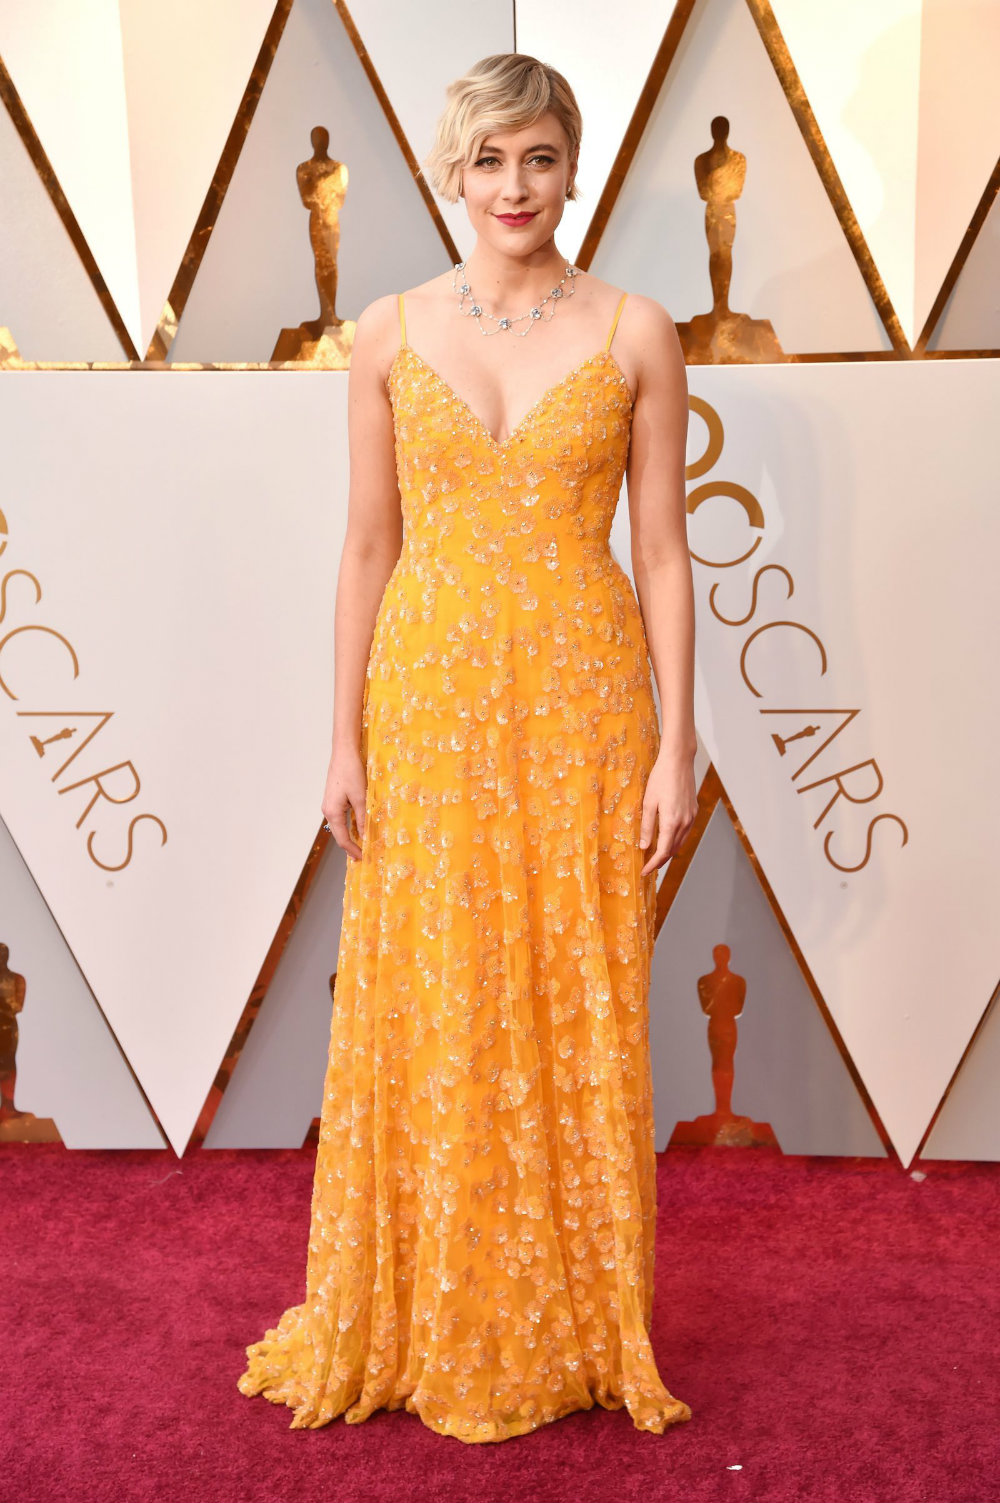 Oscars 2018 Best Dressed Celebrities on the Red Carpet 07 Oscars 2018 Oscars 2018: Best Dressed Celebrities on the Red Carpet Oscars 2018 Best Dressed Celebrities on the Red Carpet 07